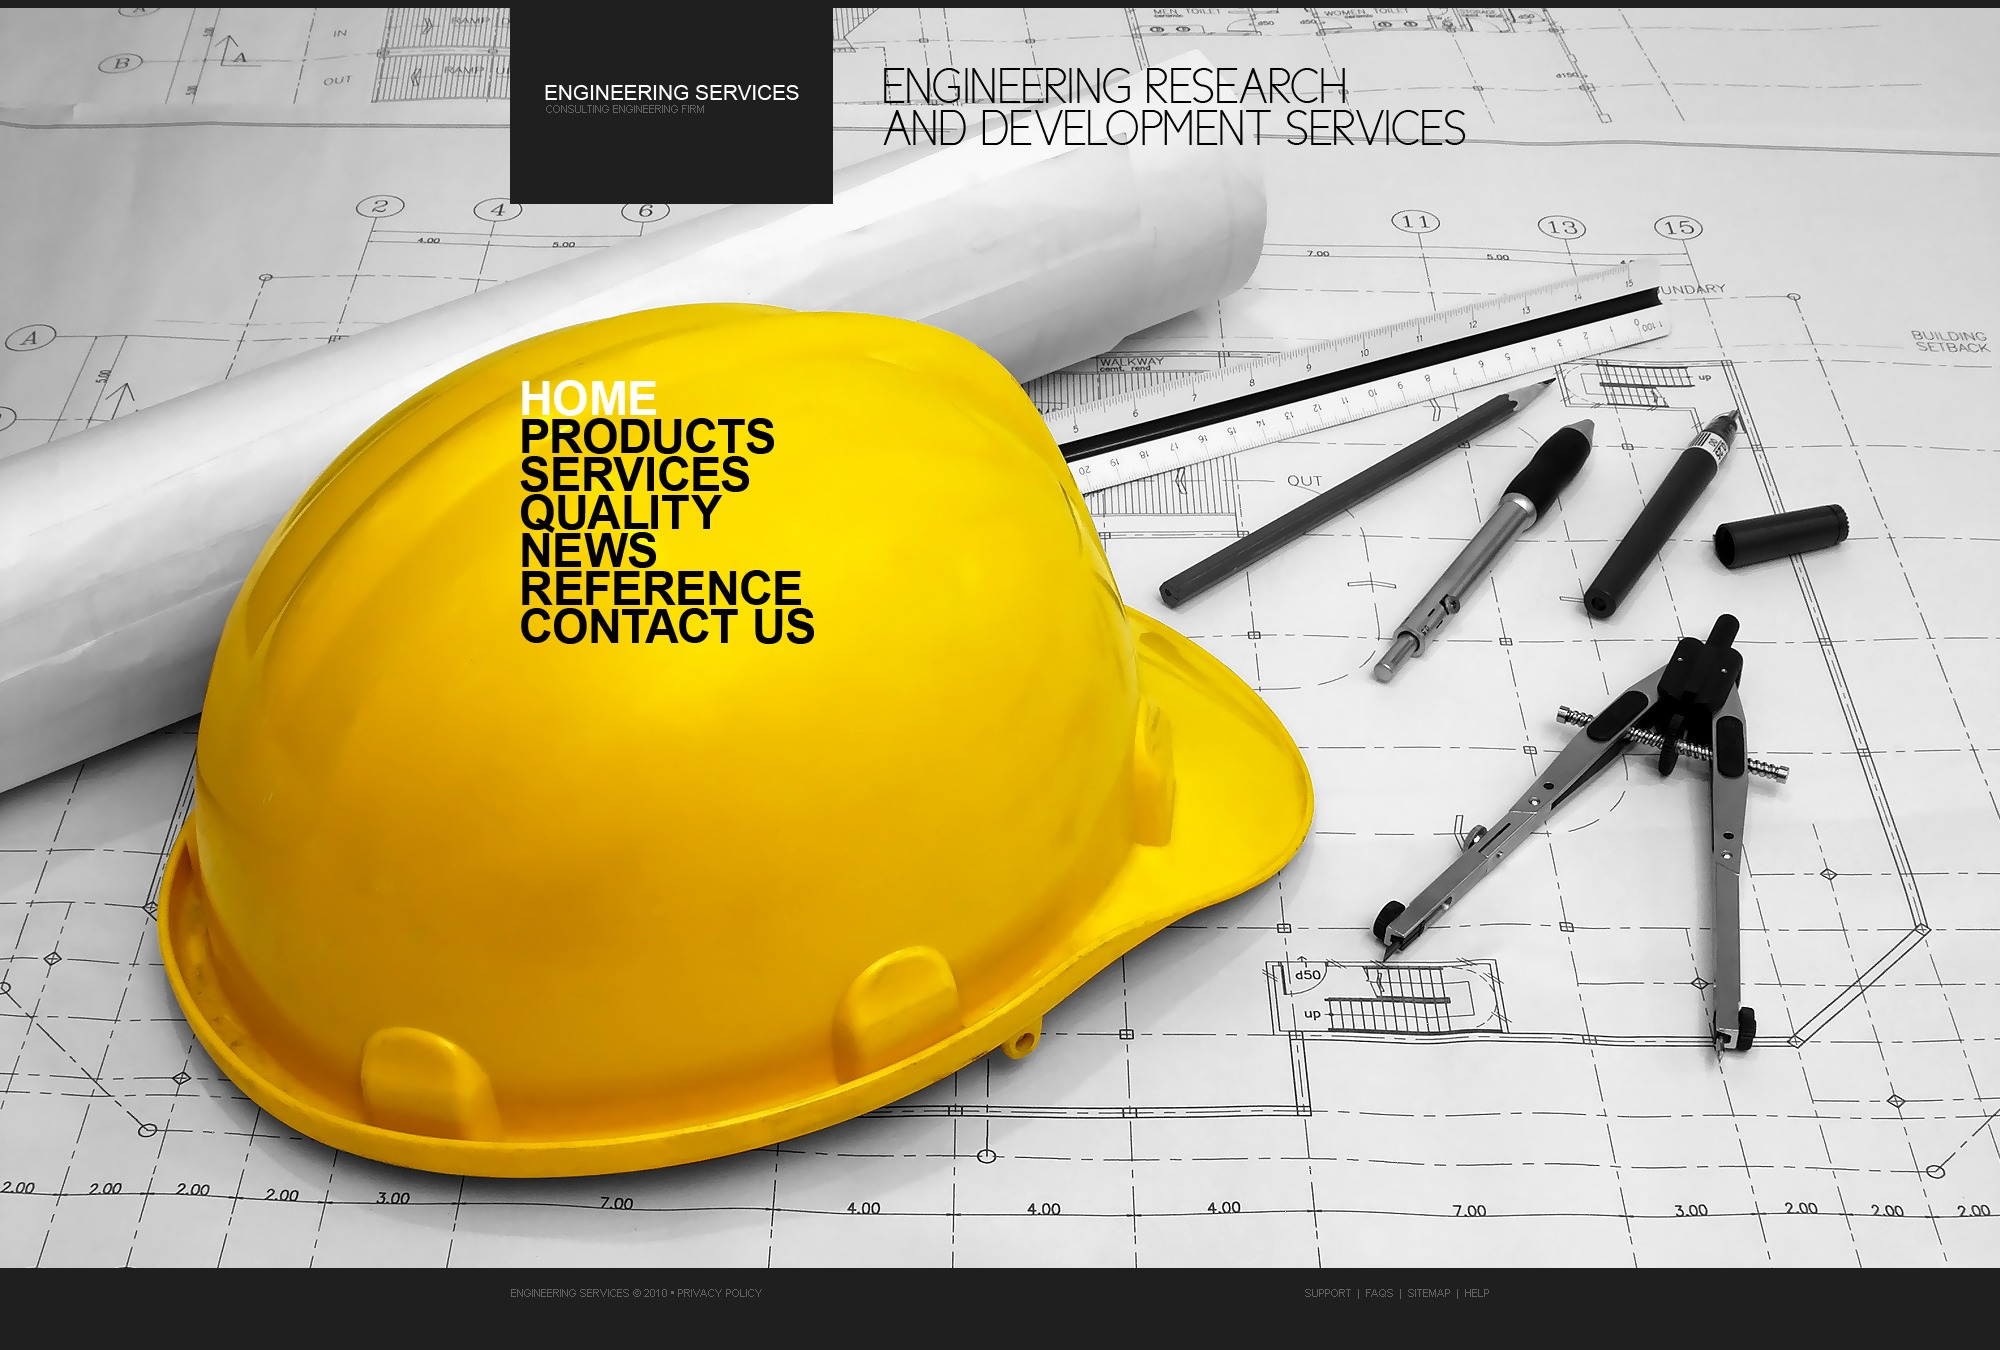 The Engineering Services PSD Design 54384, one of the best PSD templates of its kind (industrial, architecture, wide), also known as engineering services PSD template, architecture company PSD template, construction PSD template, buildings PSD template, technology PSD template, innovation PSD template, skyscrapers PSD template, projects PSD template, constructions PSD template, houses PSD template, work PSD template, team PSD template, strategy PSD template, services PSD template, support PSD template, planning solutions design PSD template, non-standard PSD template, creative ideas PSD template, catalogue PSD template, windows PSD template, doors PSD template, equipment PSD template, sp and related with engineering services, architecture company, construction, buildings, technology, innovation, skyscrapers, projects, constructions, houses, work, team, strategy, services, support, planning solutions design, non-standard, creative ideas, catalogue, windows, doors, equipment, sp, etc.